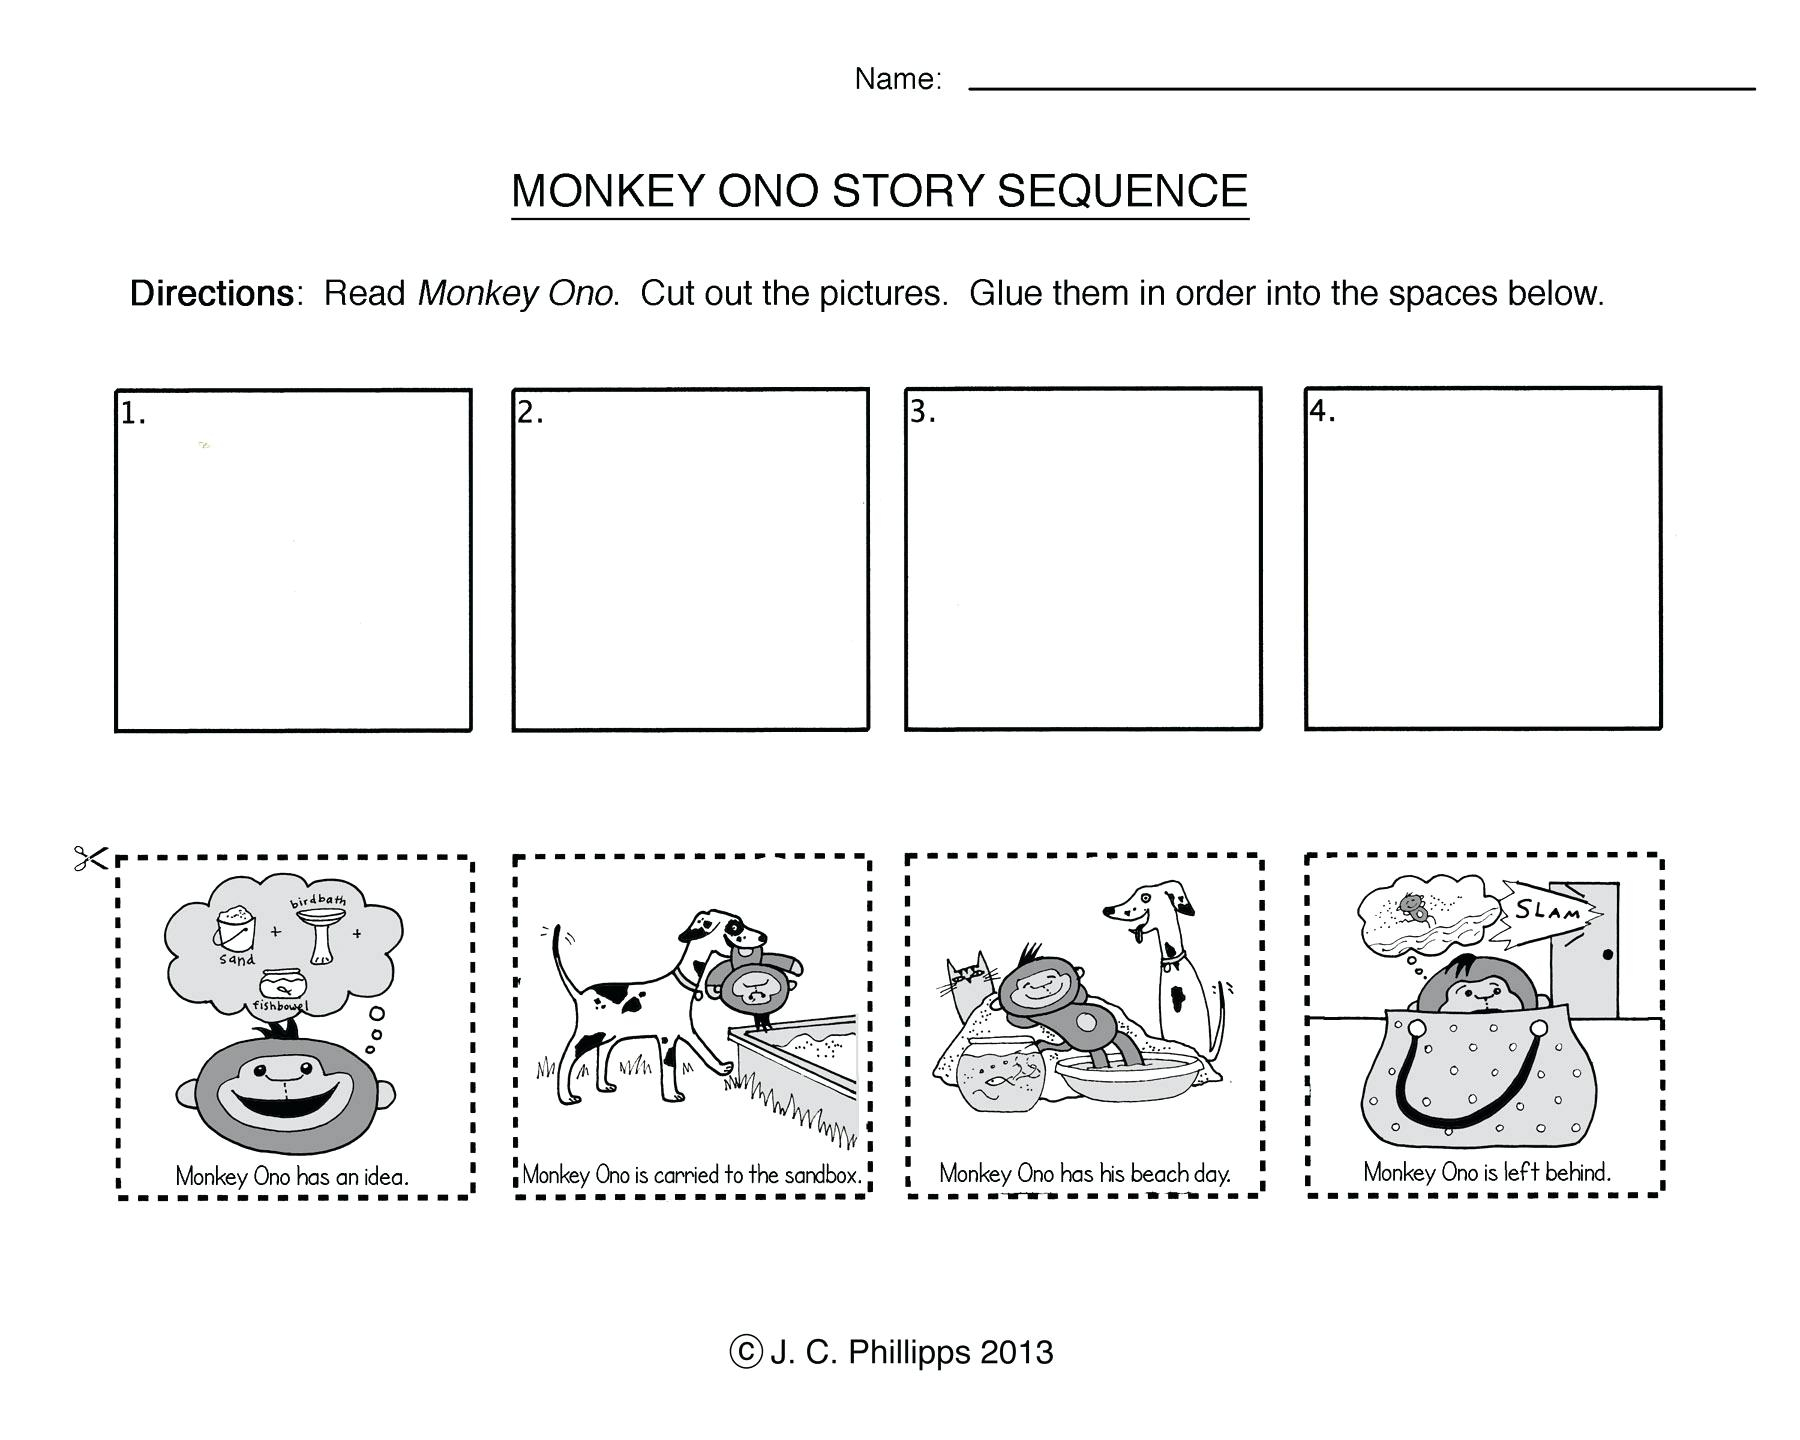 Sequence Worksheets For 1St Grade Sequencing Worksheets Have Fun | Free Printable Sequencing Worksheets For 1St Grade